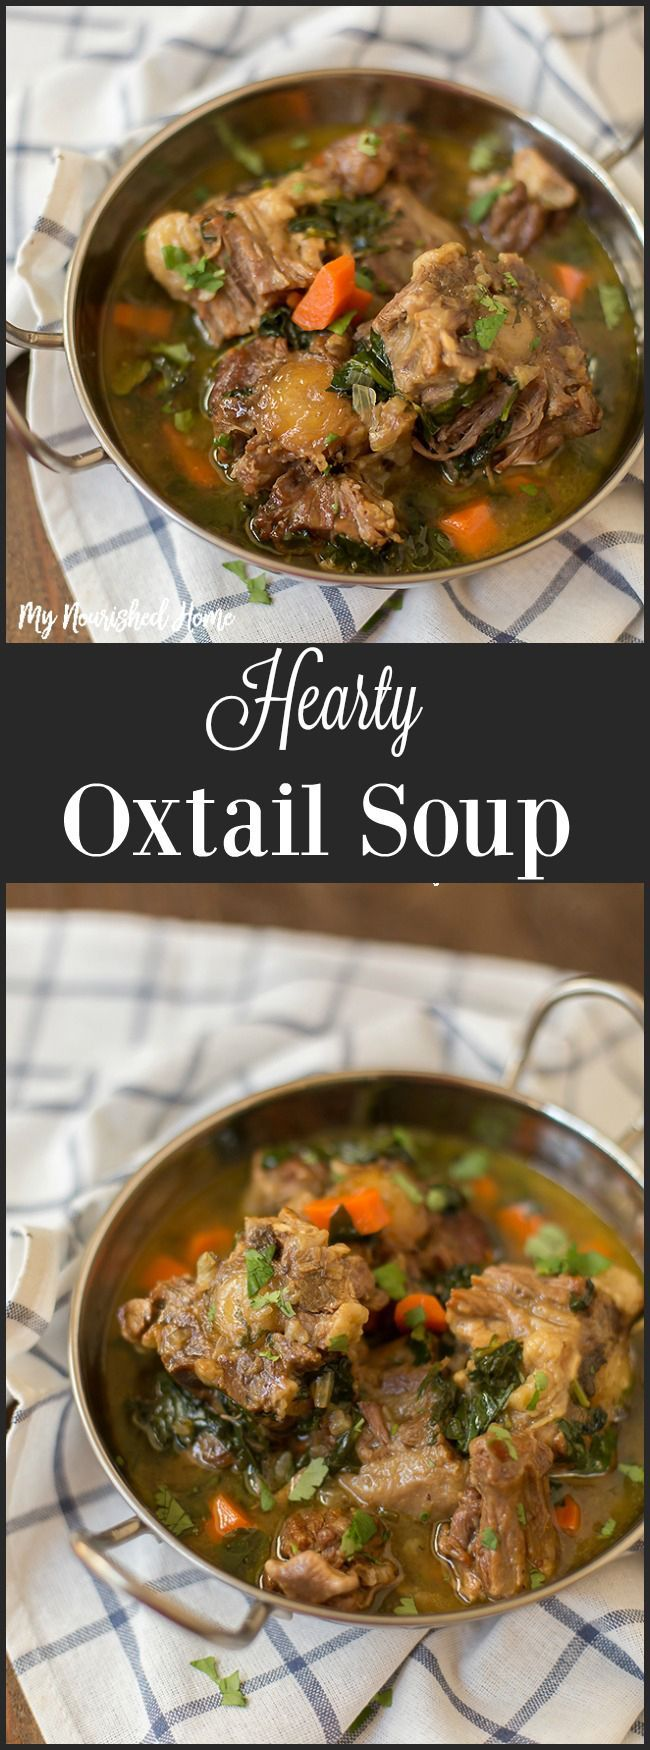 This hearty Oxtail Soup Recipe is thicker than a soup, but not quite a stew. Rich and full of veggies, you are going to love this flavor! via @mynourishedhome